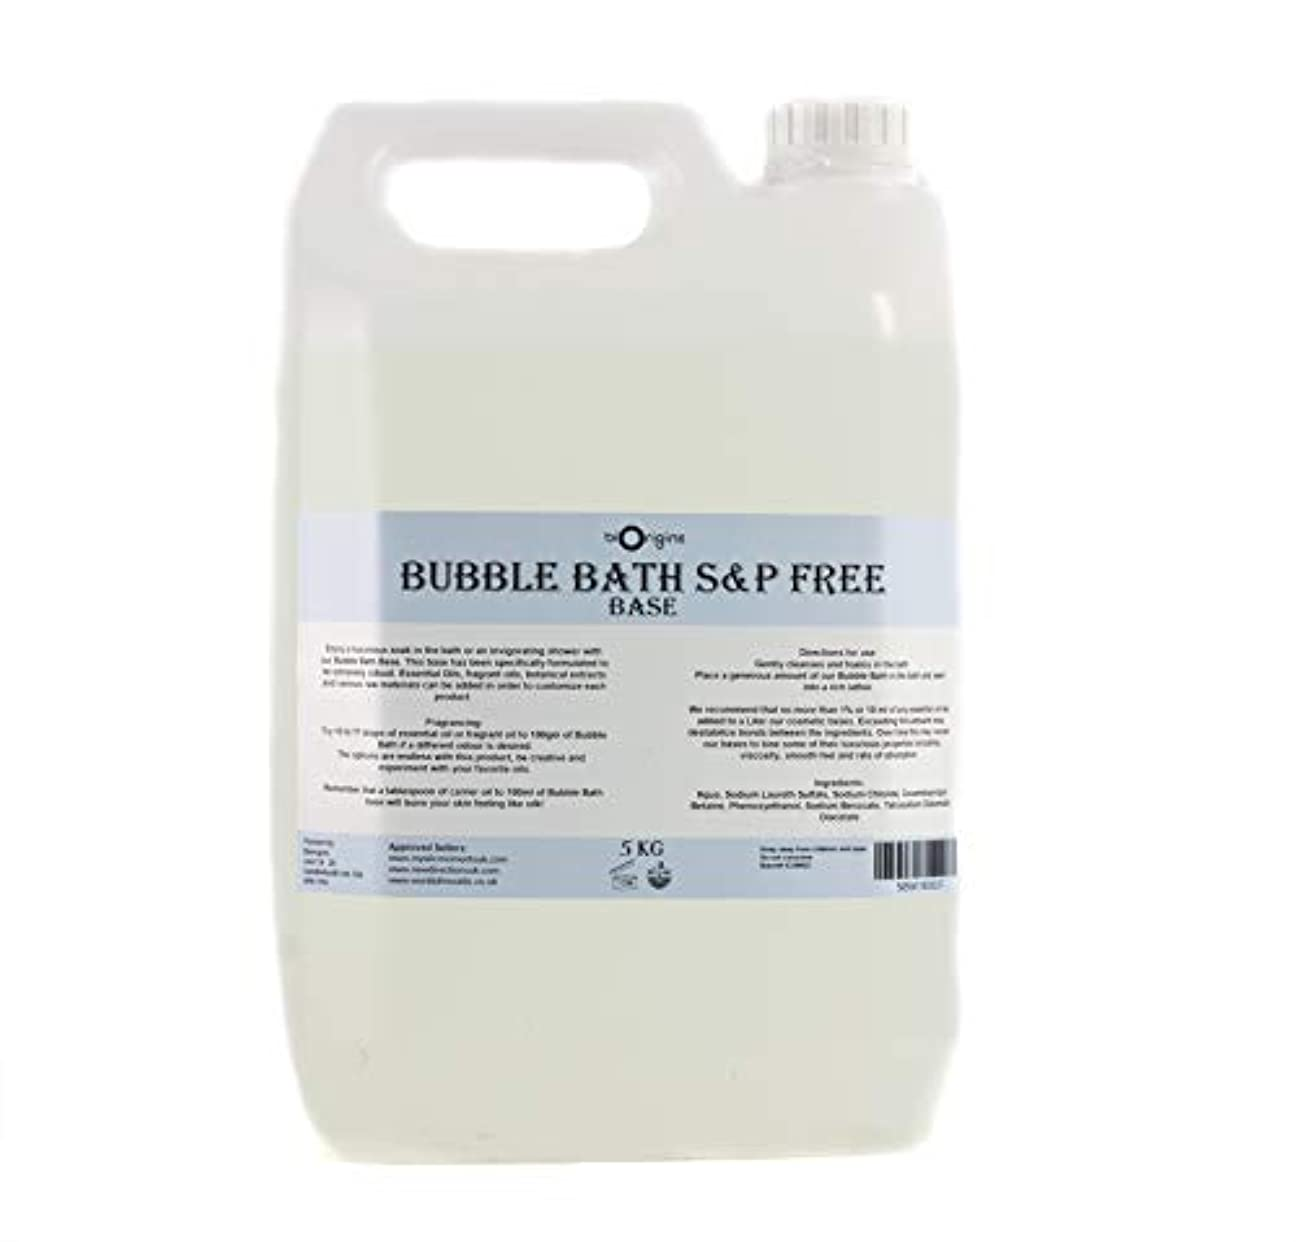 規制概念証言するBubble Bath Base - SLS & Paraben Free - 5Kg